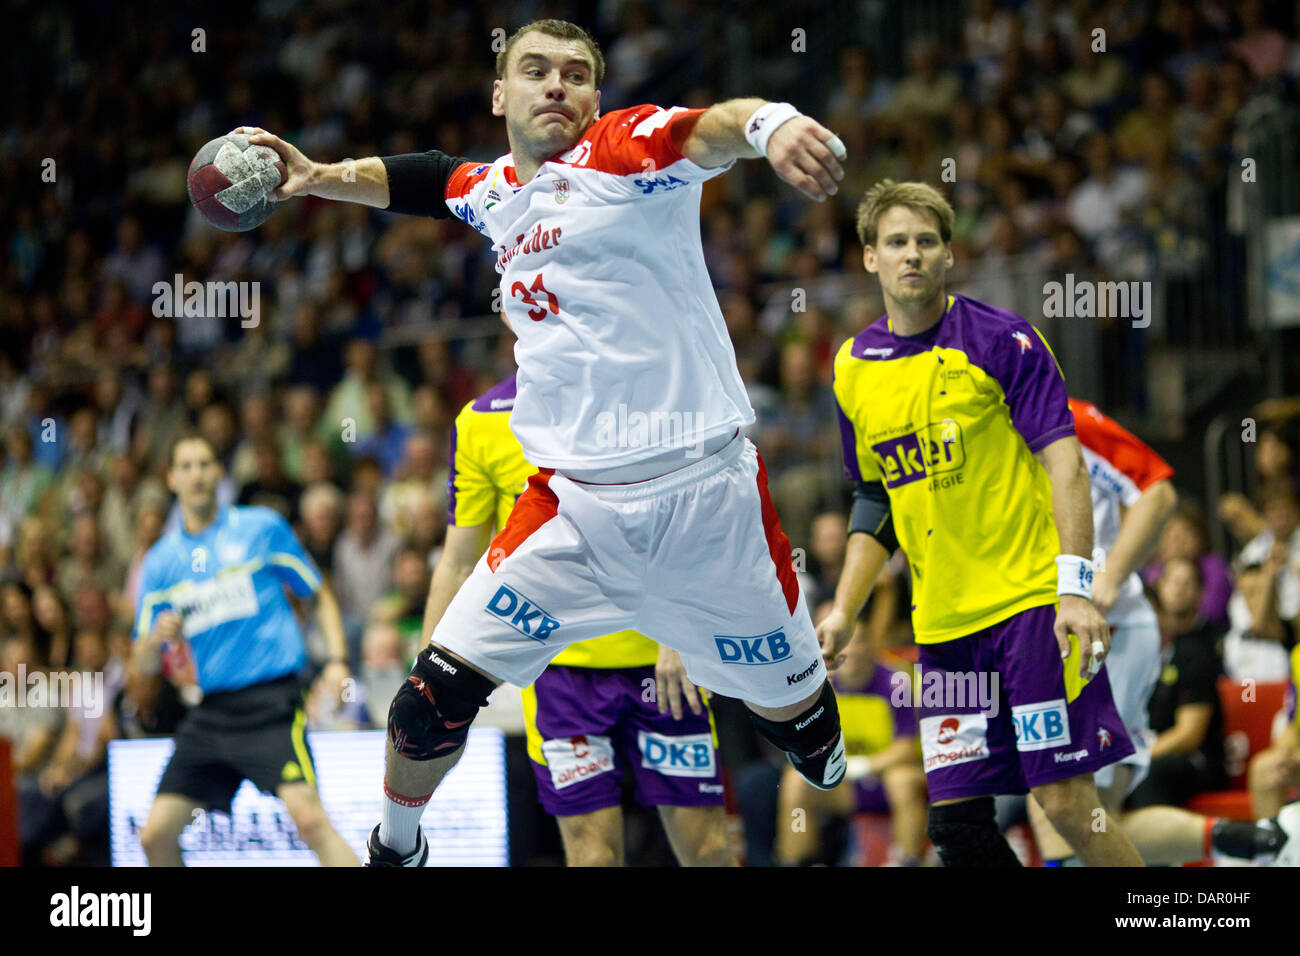 Magdeburg's Bartosz Jurecki throws the ball during a handball match of SC Magdeburg against Fuechse Berlin in - Stock Image